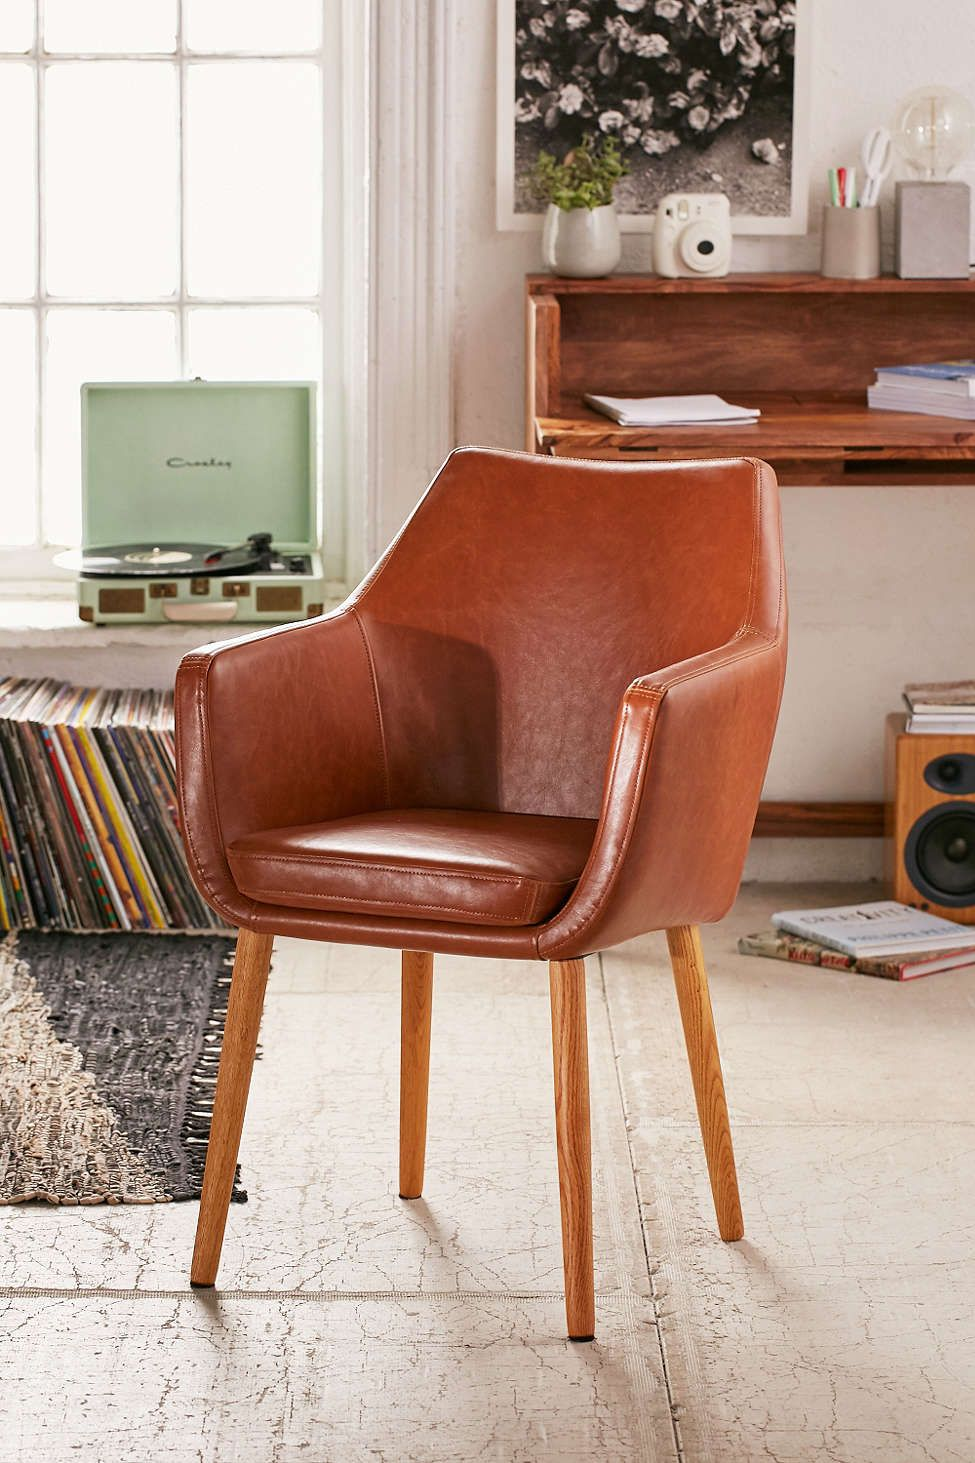 The 20 Coolest Home Pieces At Urban Outfitters Right Now  Saddles Fair Chair Designs For Living Room Design Inspiration